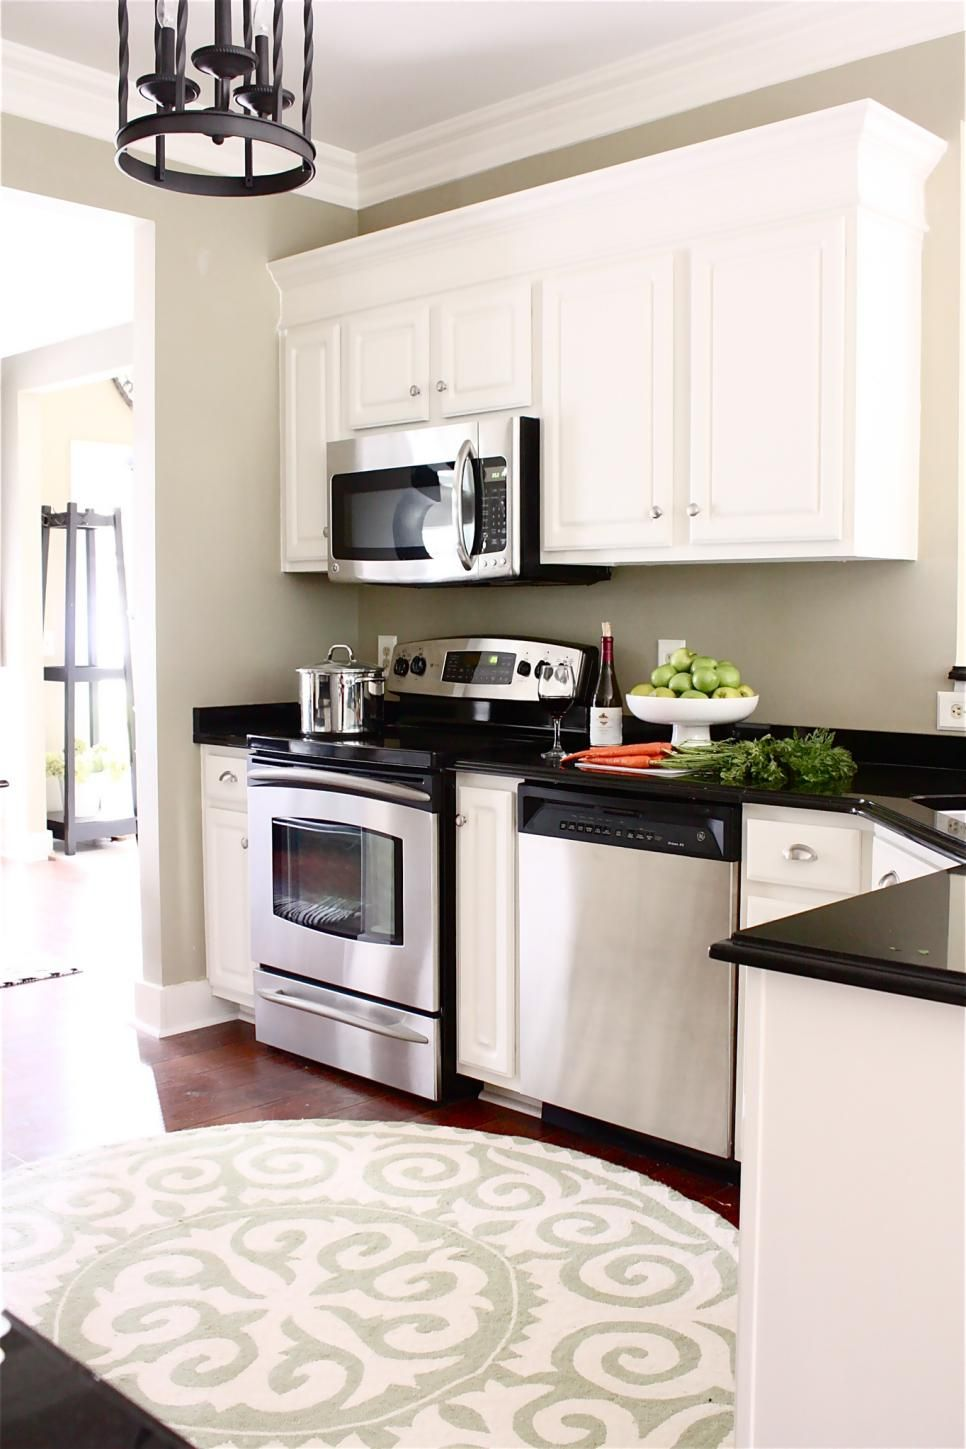 If you have solid but unremarkable buildergrade cabinets the